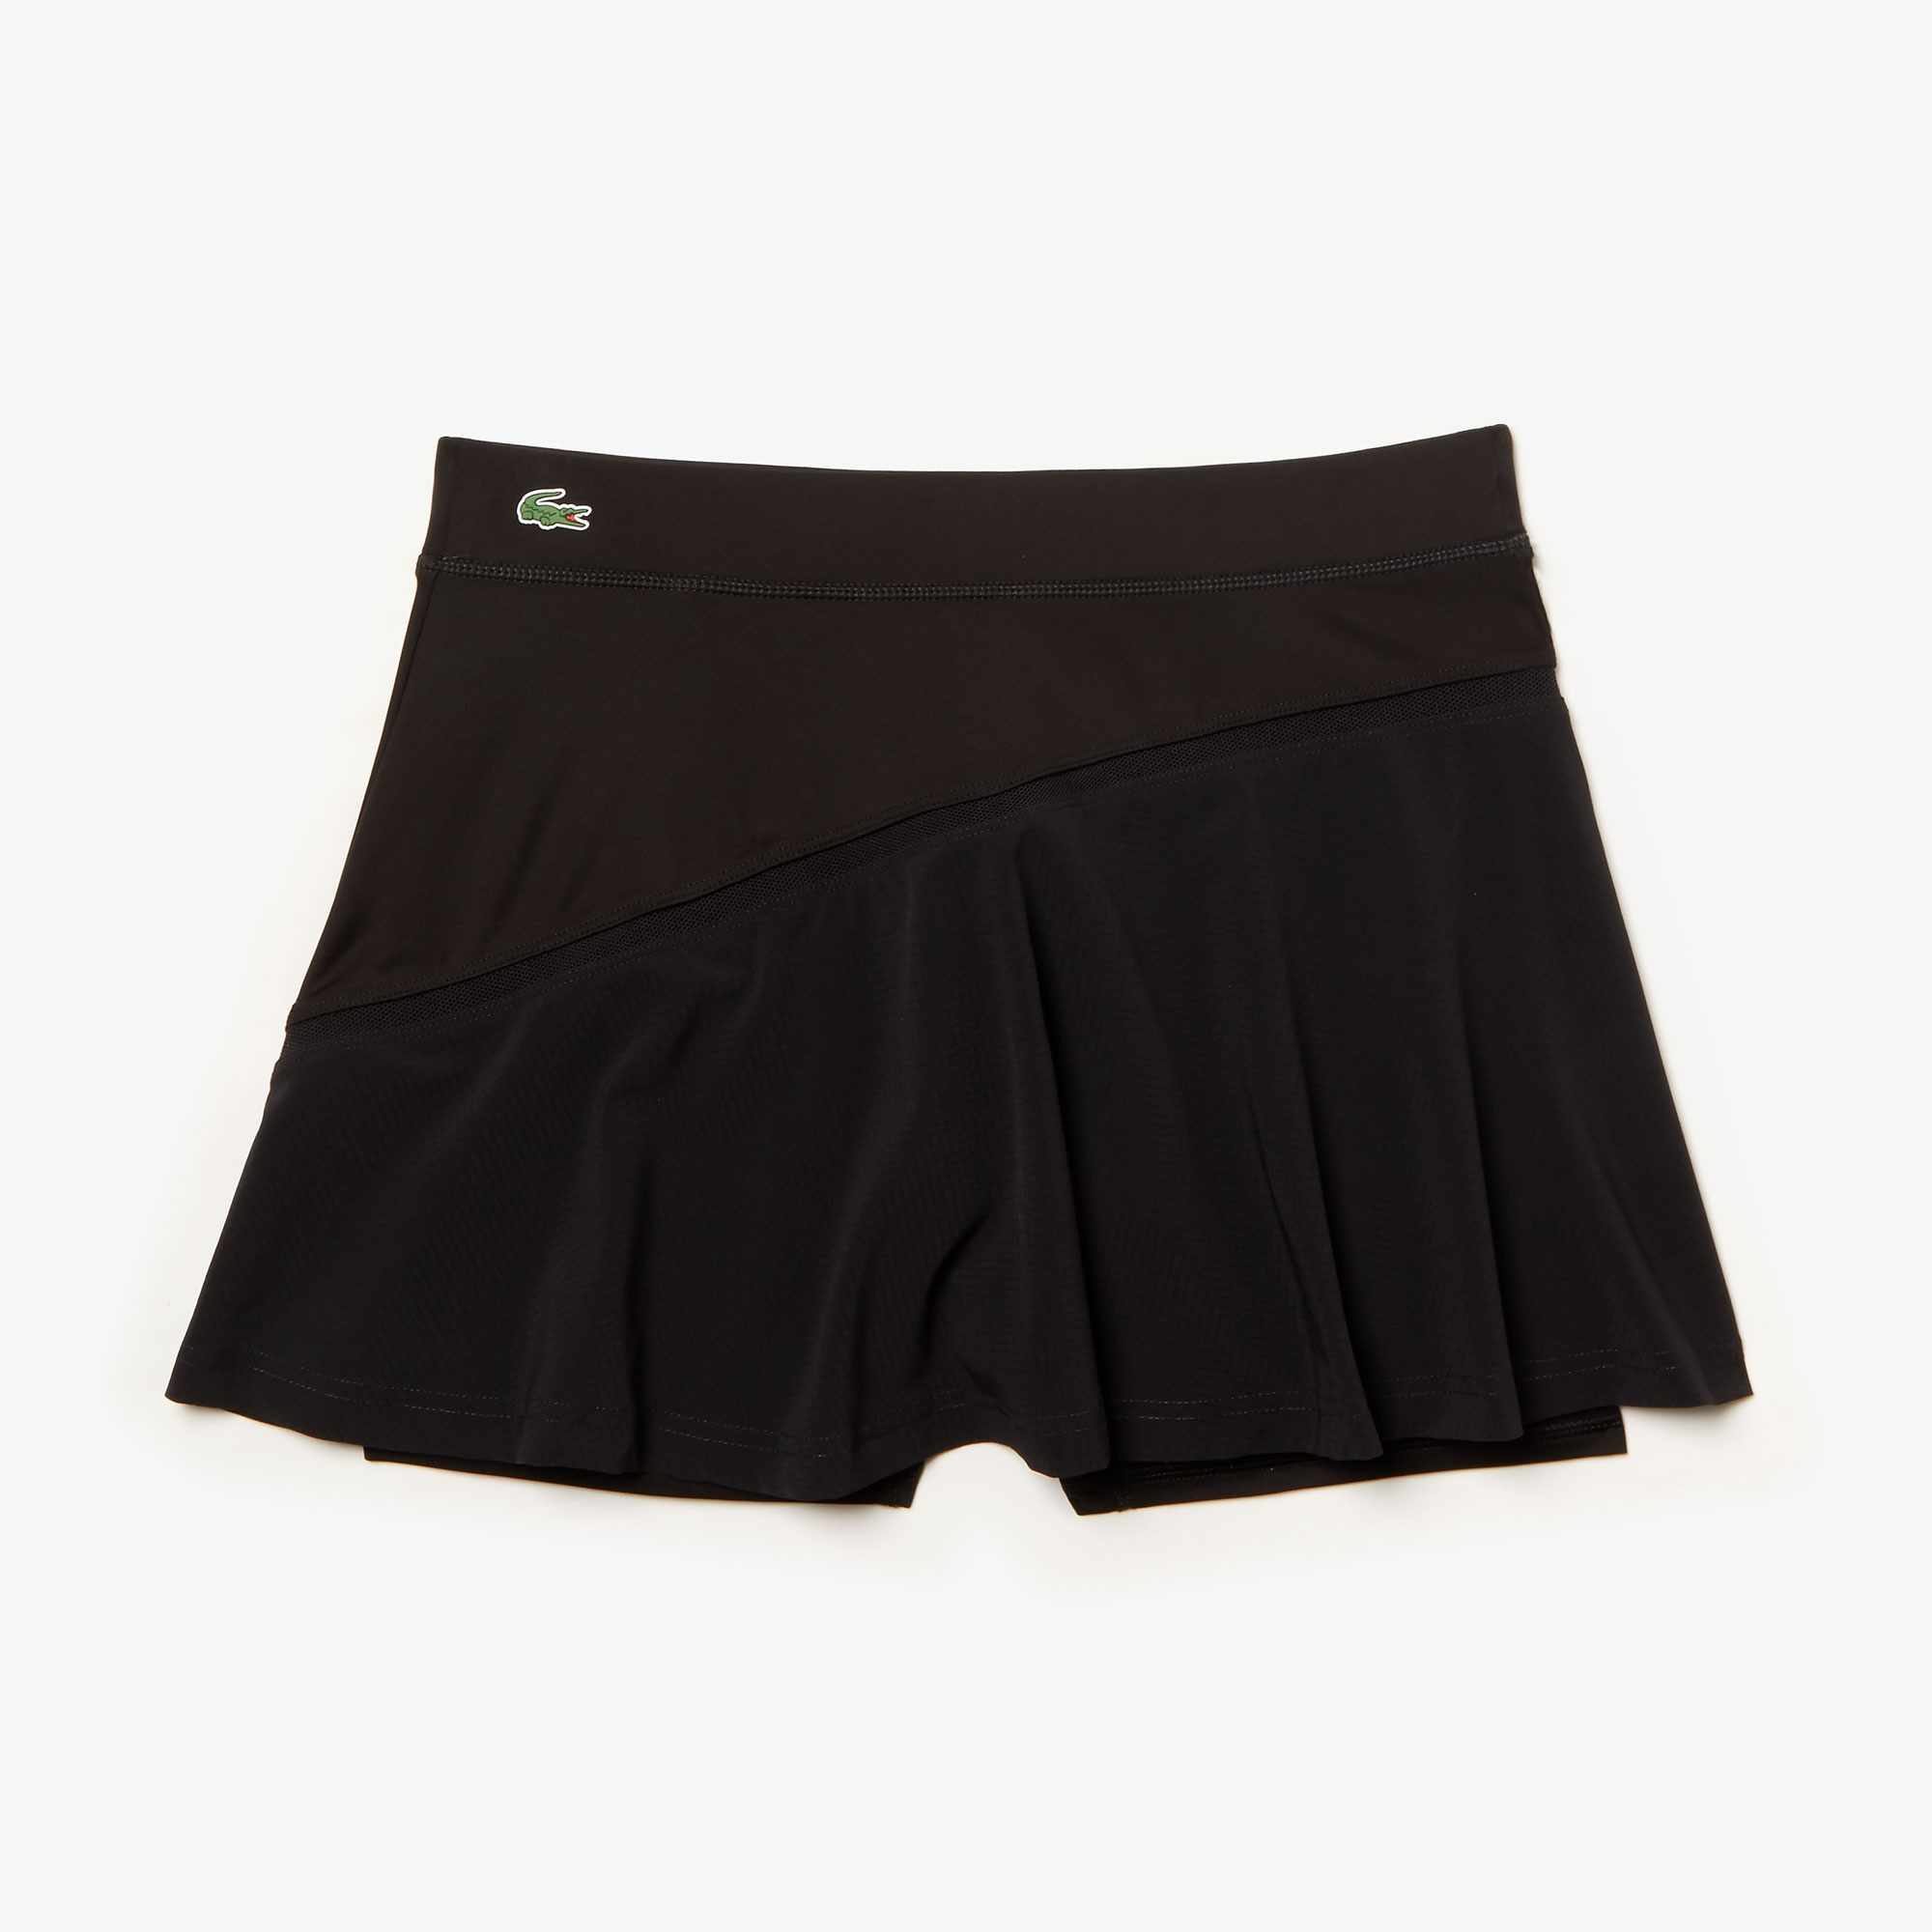 Women's SPORT Built-In Shorts Tennis Skirt